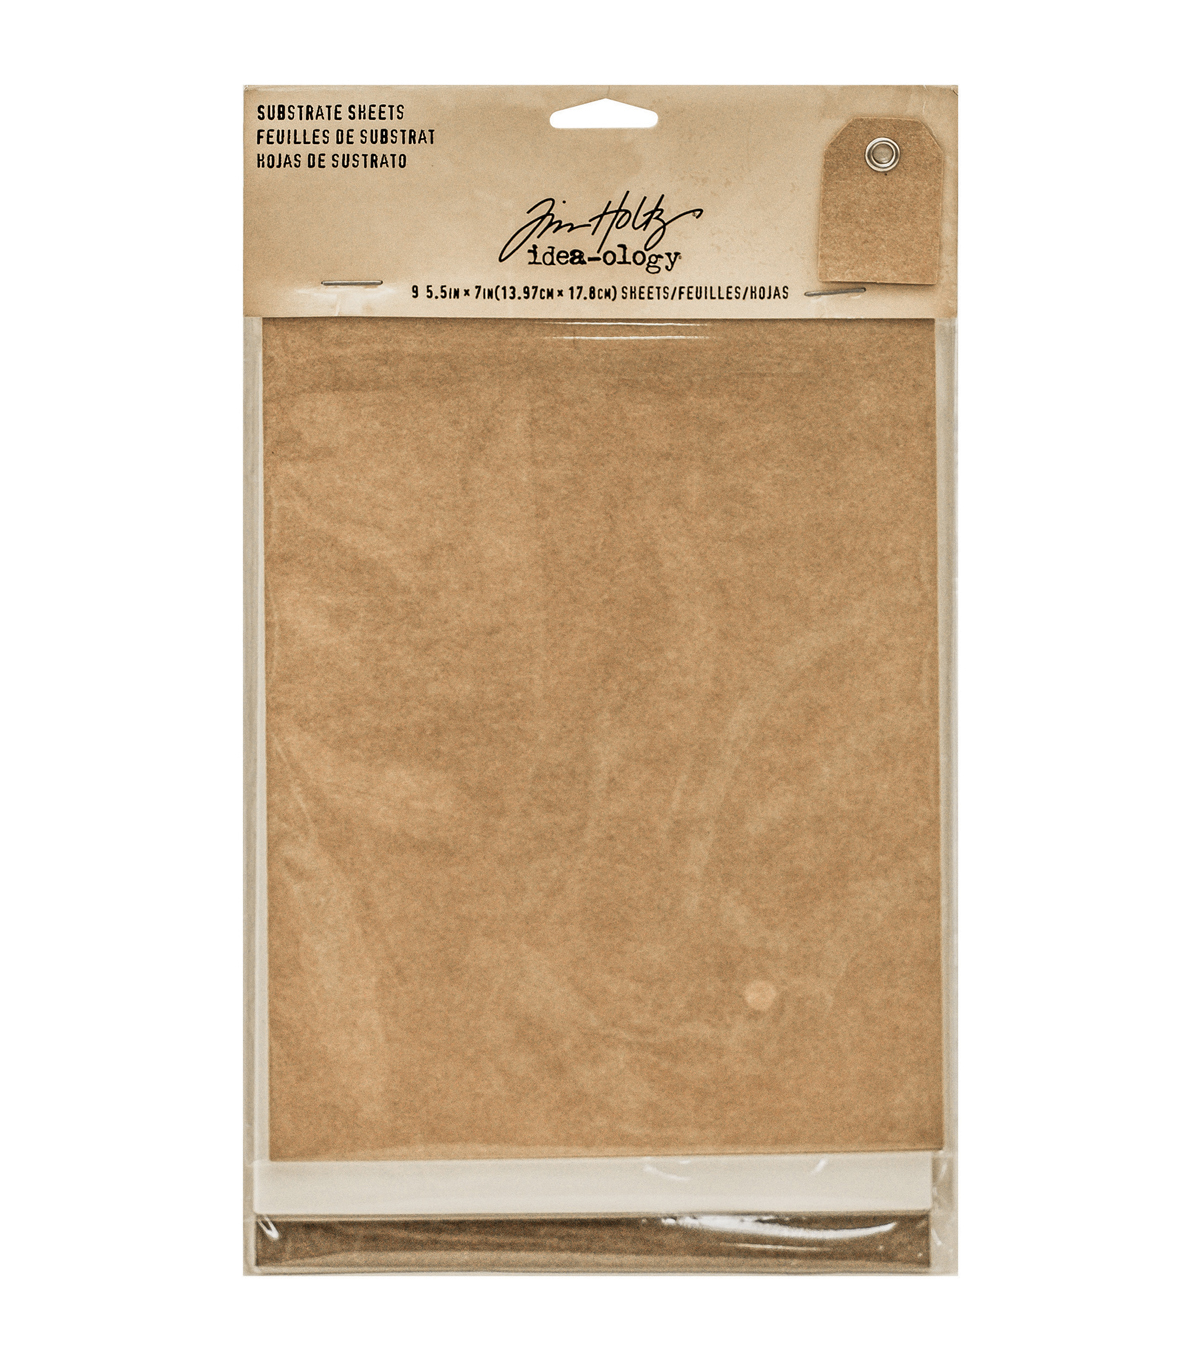 Tim Holtz Idea-Ology Substrate Sheets 5.5\u0022X7\u0022 9/Pkg-3 Each Of 3 Colors; Kraft, White & Brown